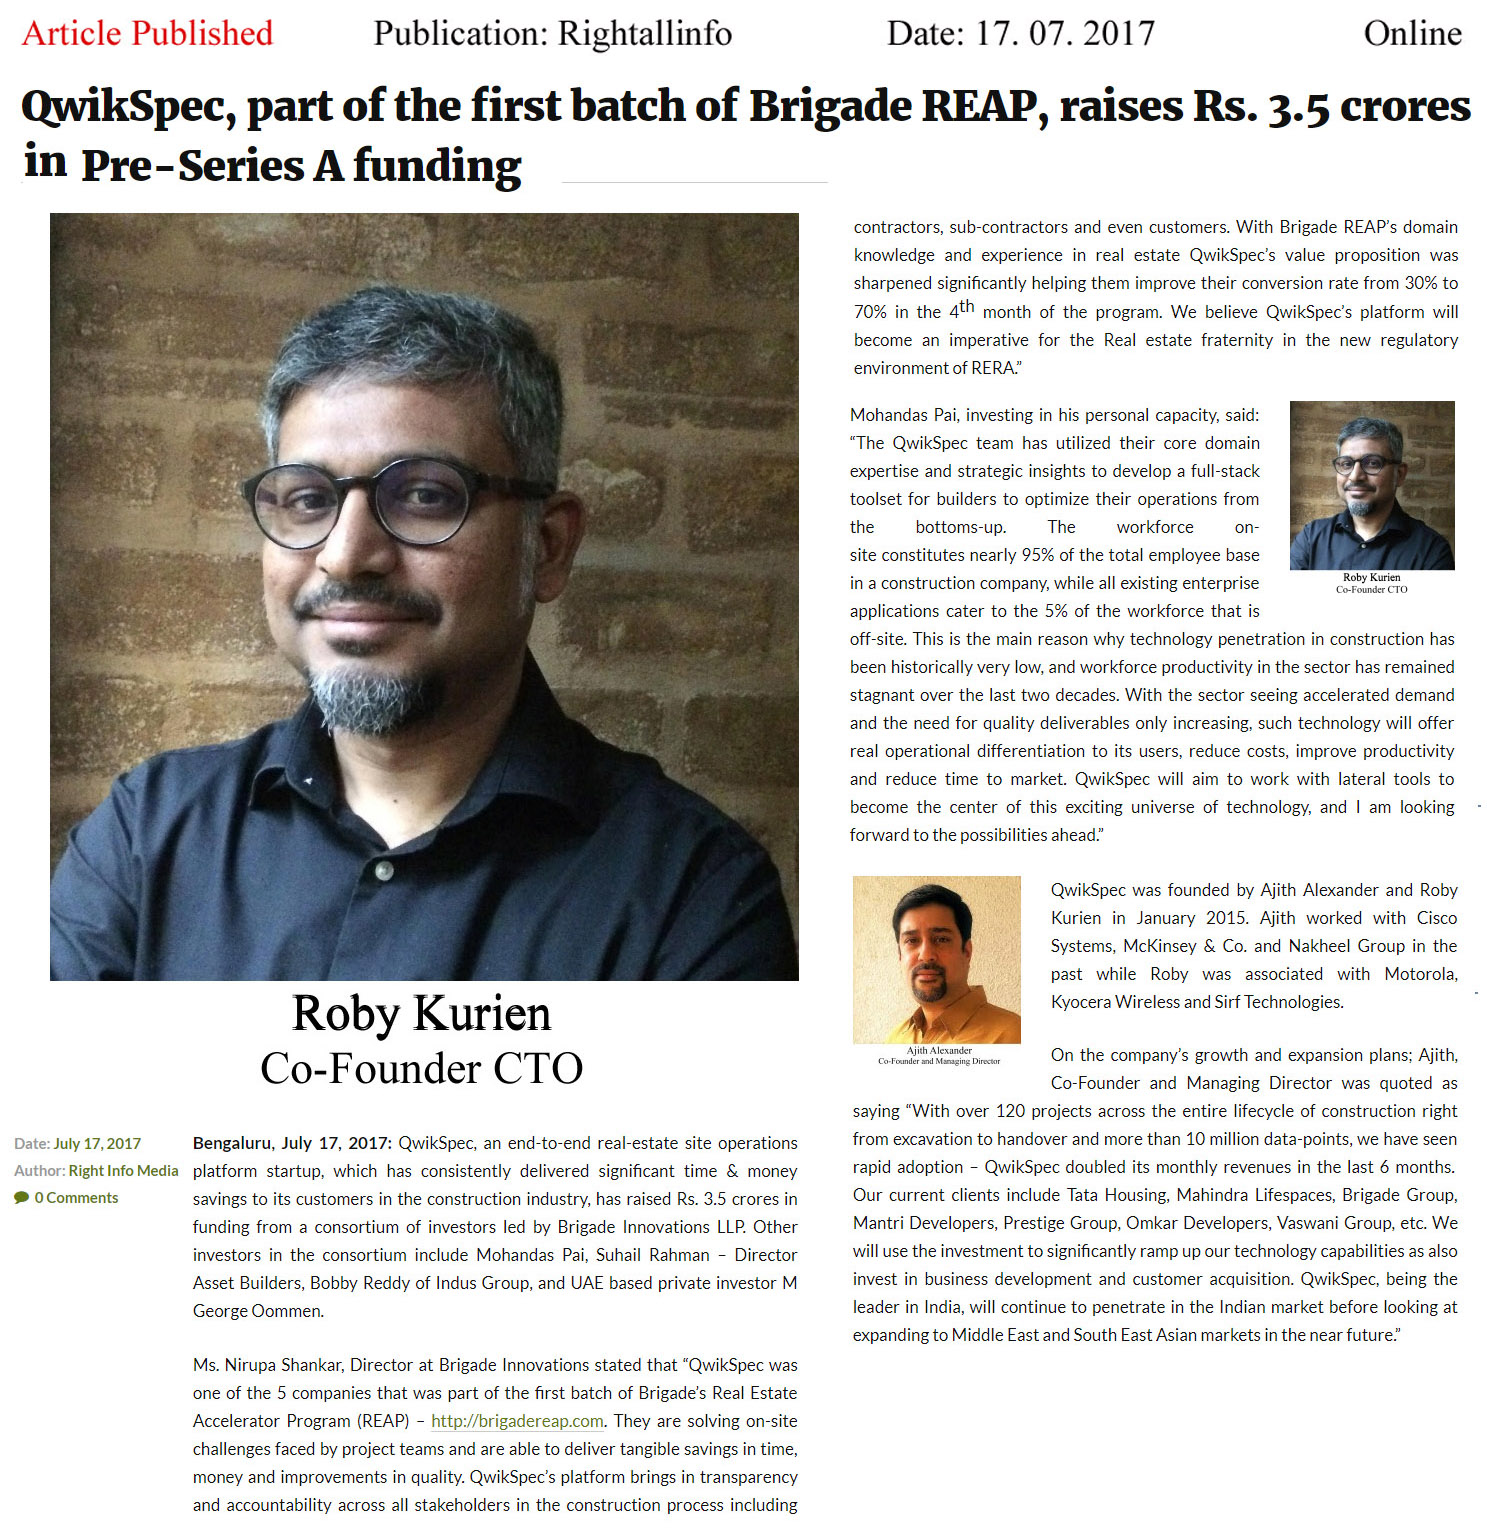 QwikSpec, part of the first batch of Brigade REAP, raises Rs. 3.5 crores in Pre-Series A funding—Right Info